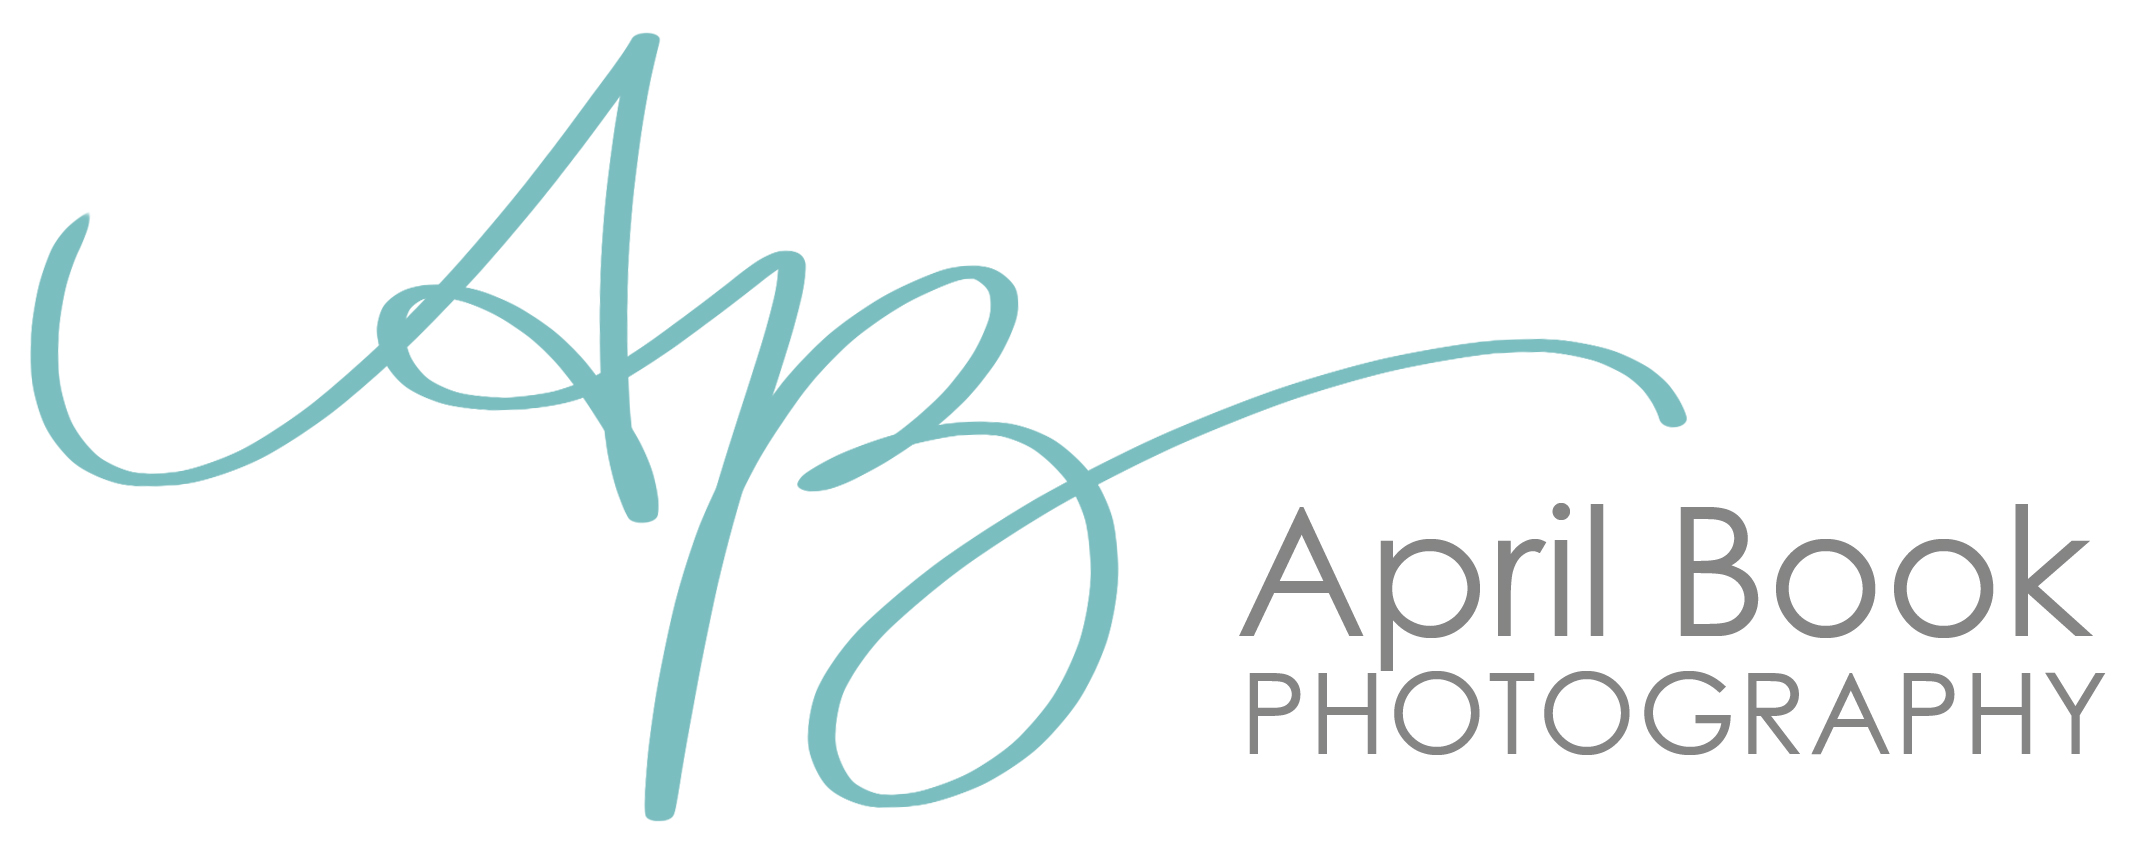 April Book Photography | Westport, CT